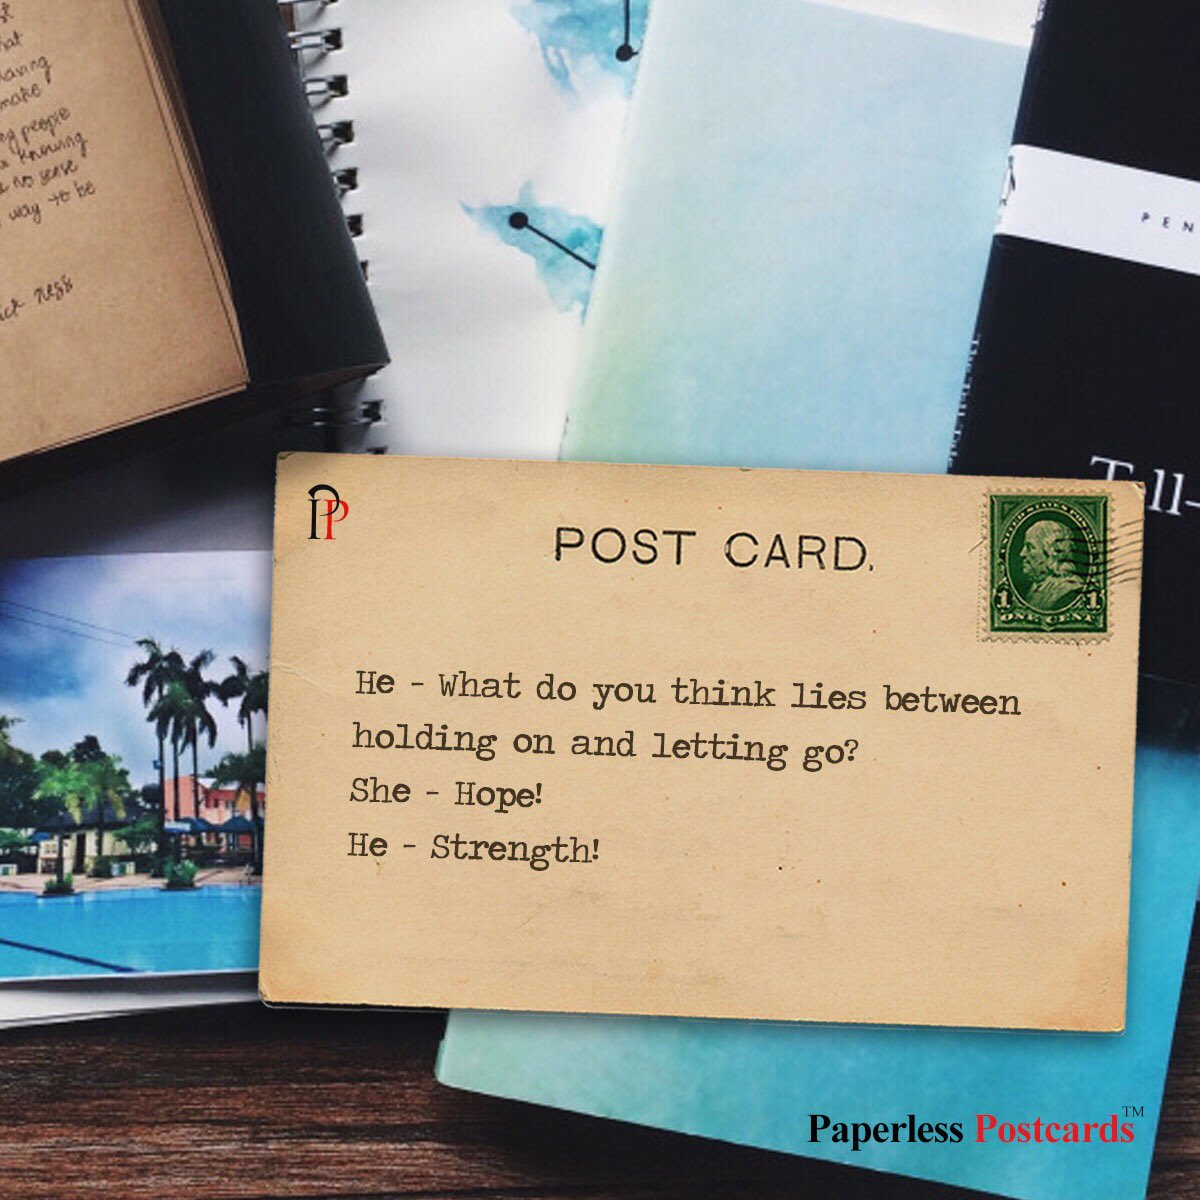 Paperless Postcards On Twitter Paperlesspostcards Nonfiction Reallife Conversationsgotreal Contemplative